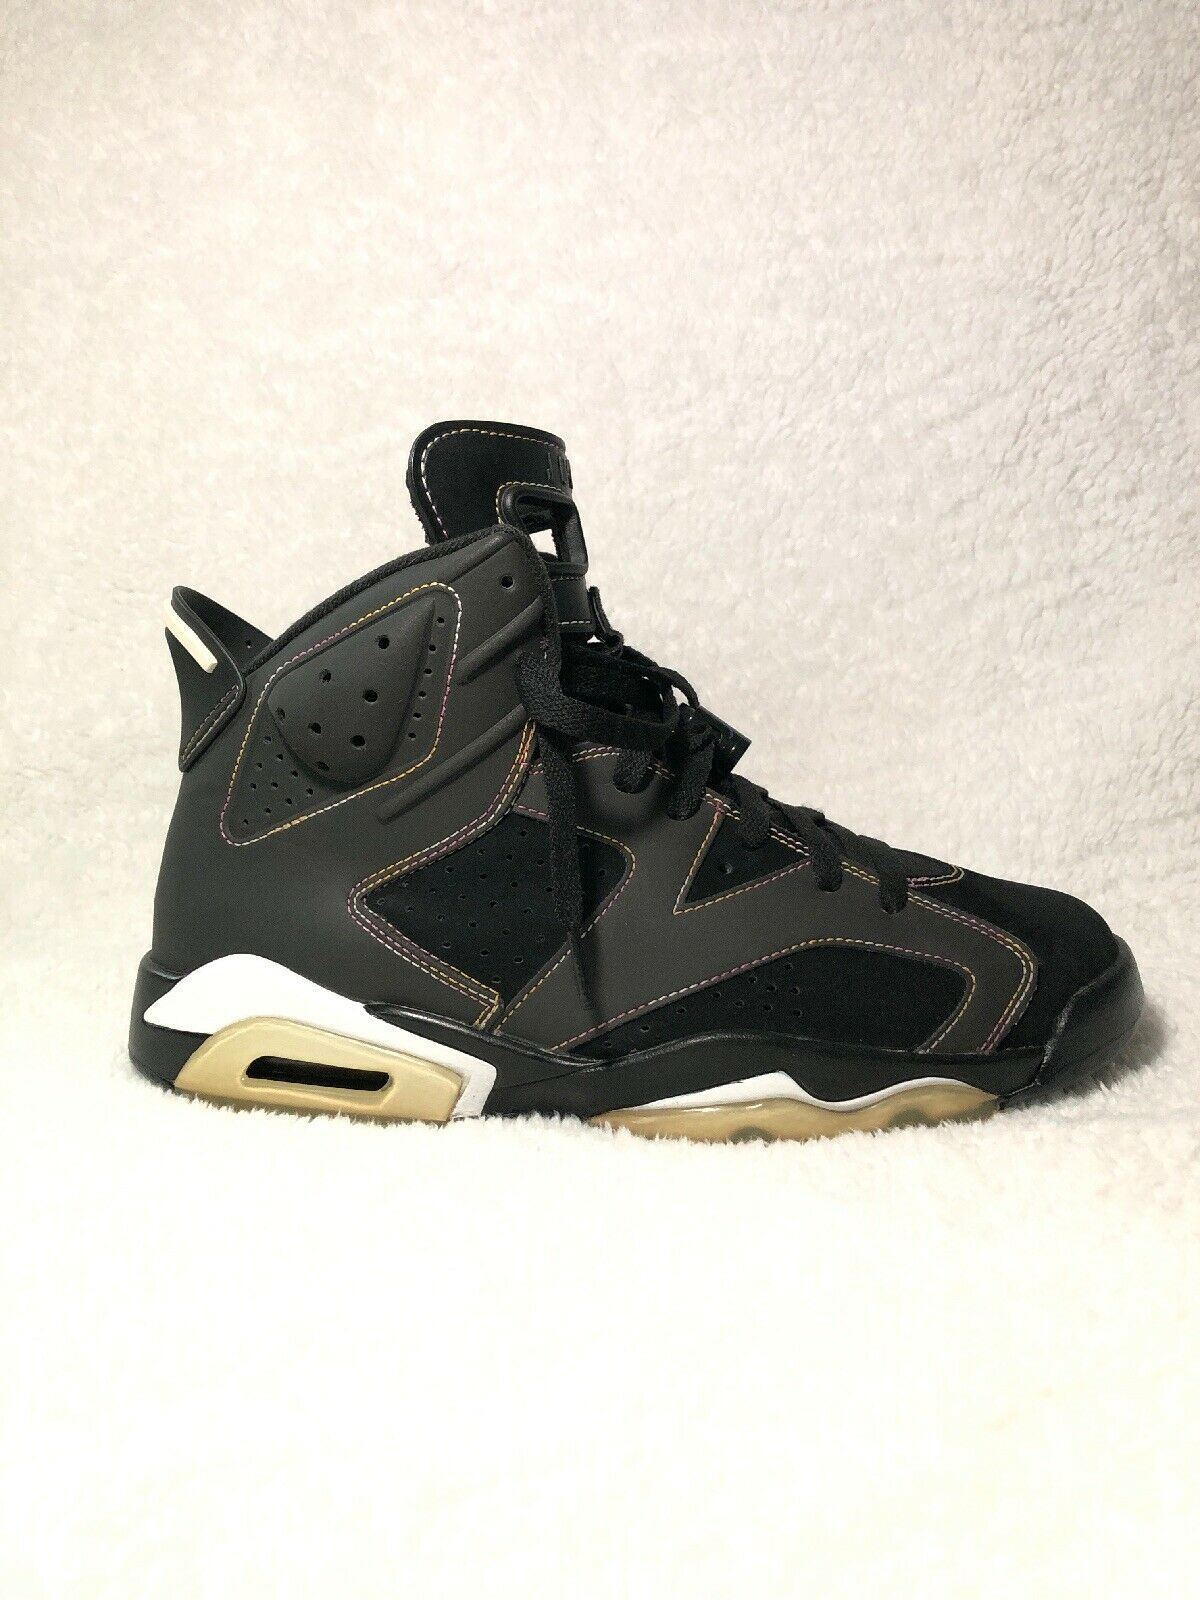 cee5f5a430a41 Air Jordan Retro 6 (size 9) Lakers nnptpx7256-Athletic Shoes - boots ...